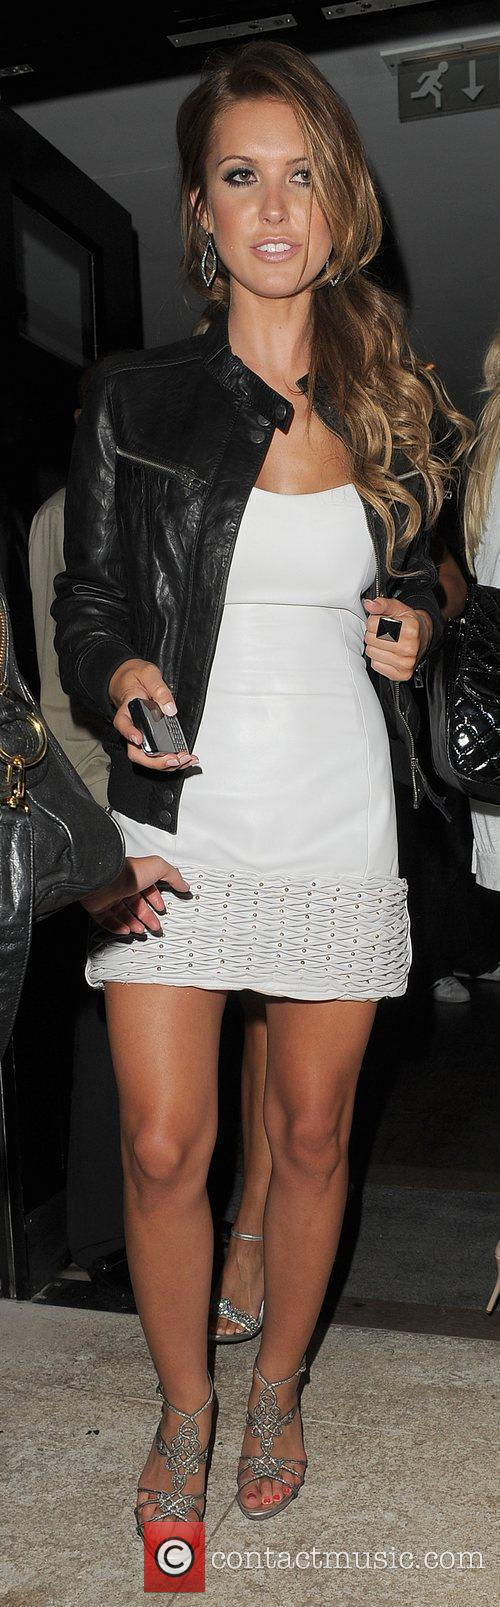 Audrina Patridge leaving 'The Hills' finale party, held...